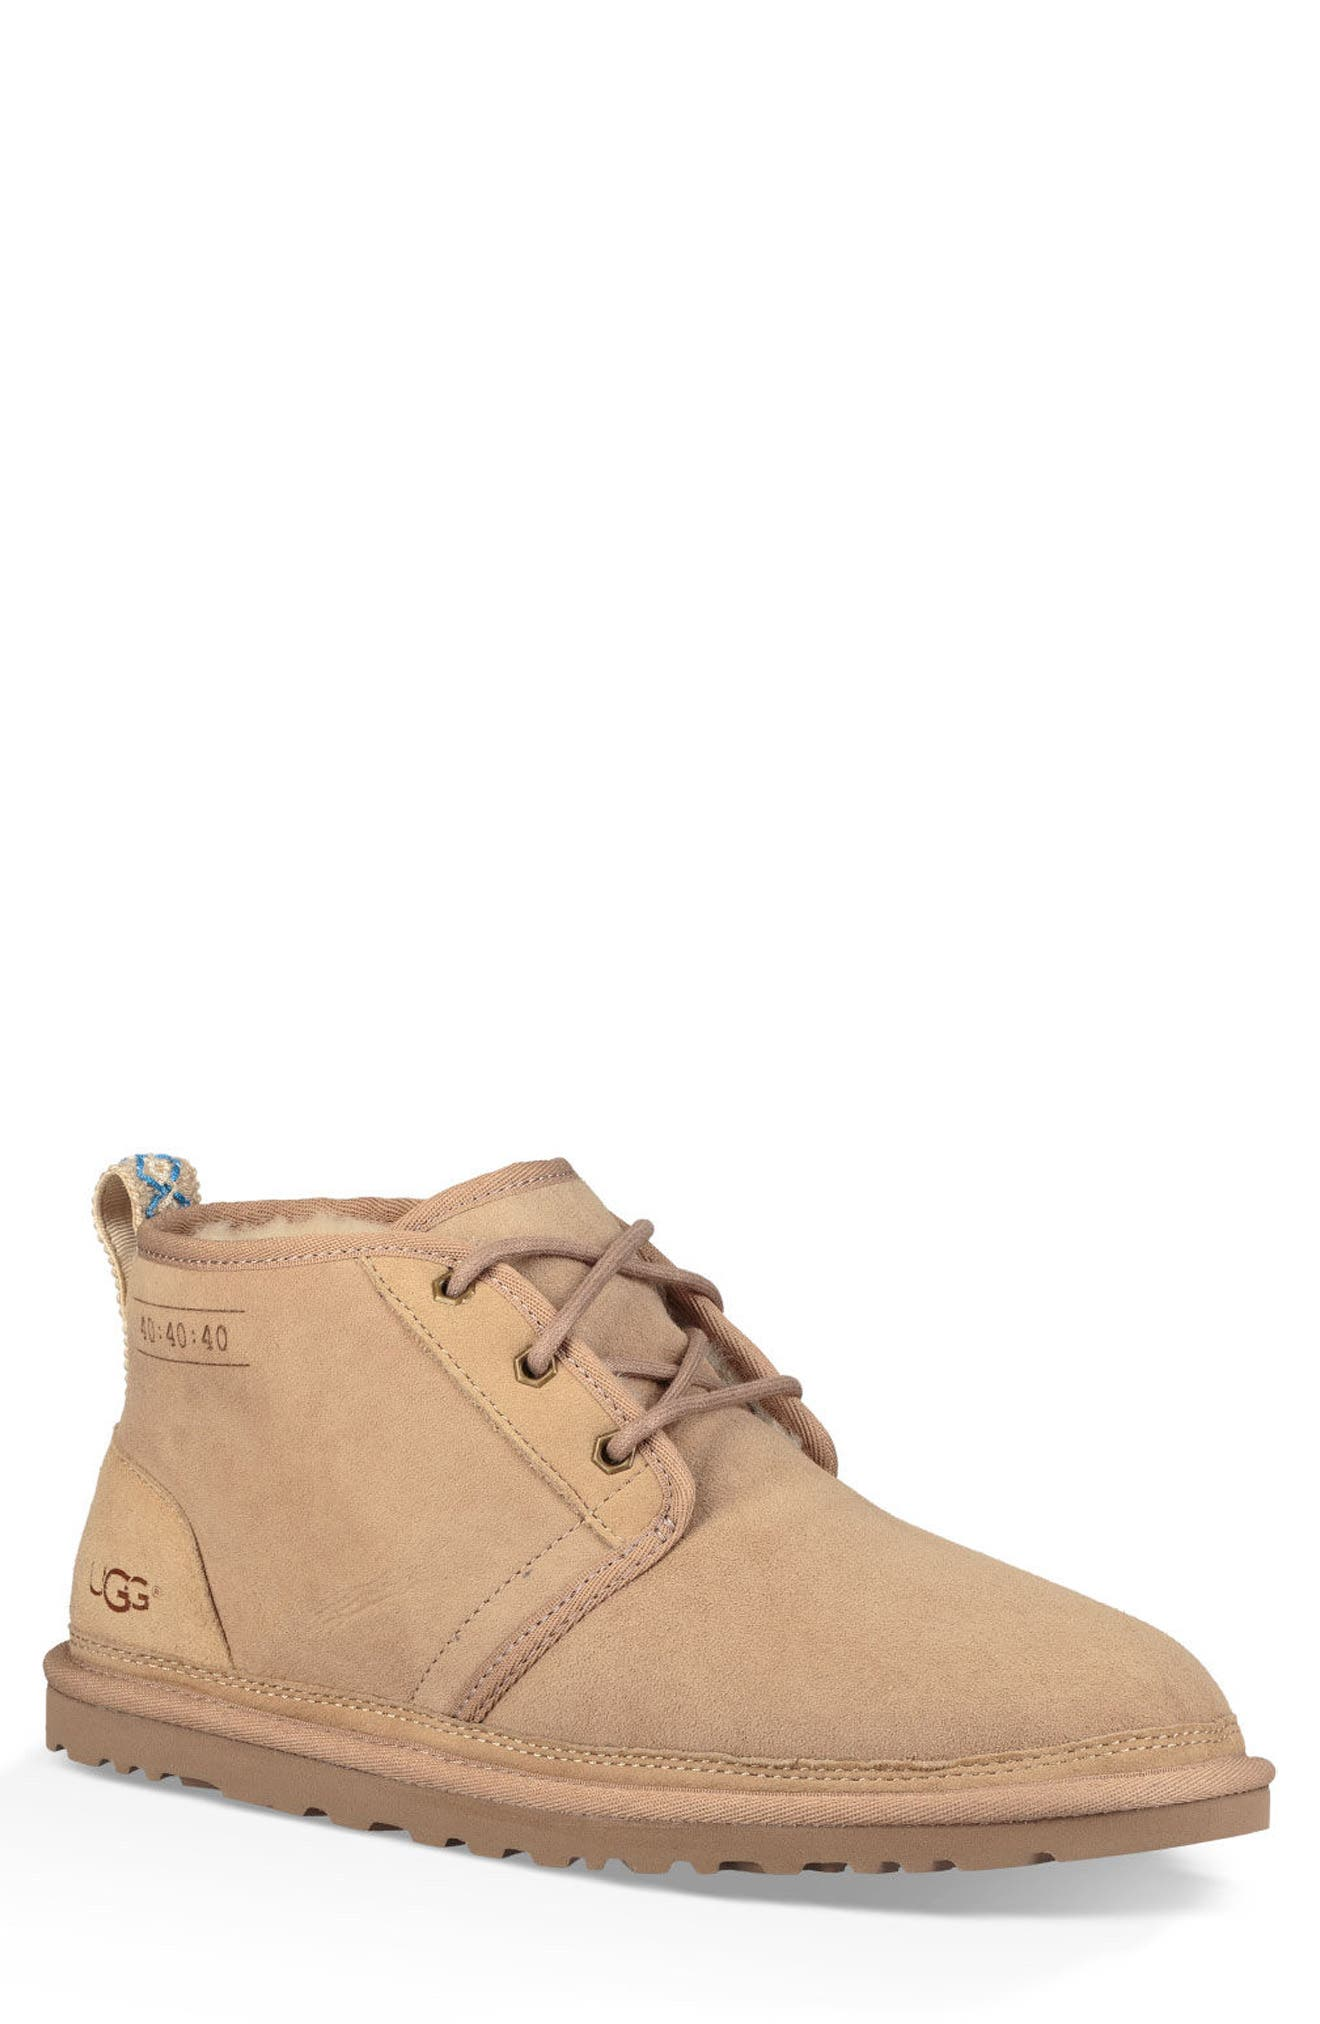 Ugg Neumel 40:40:40 Anniversary Genuine Shearling Boot, Brown